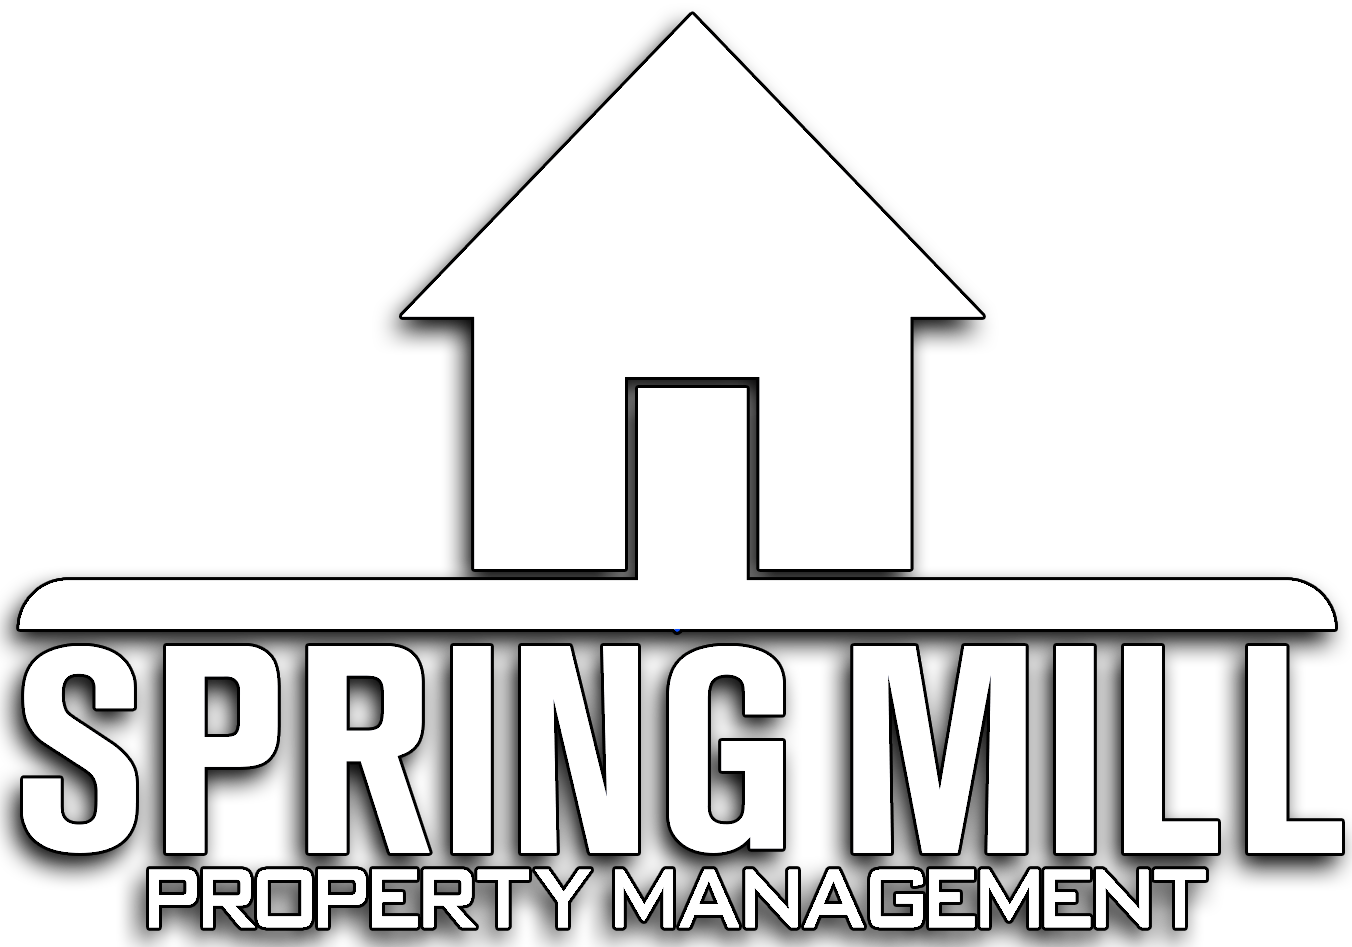 Spring Mill Property Management